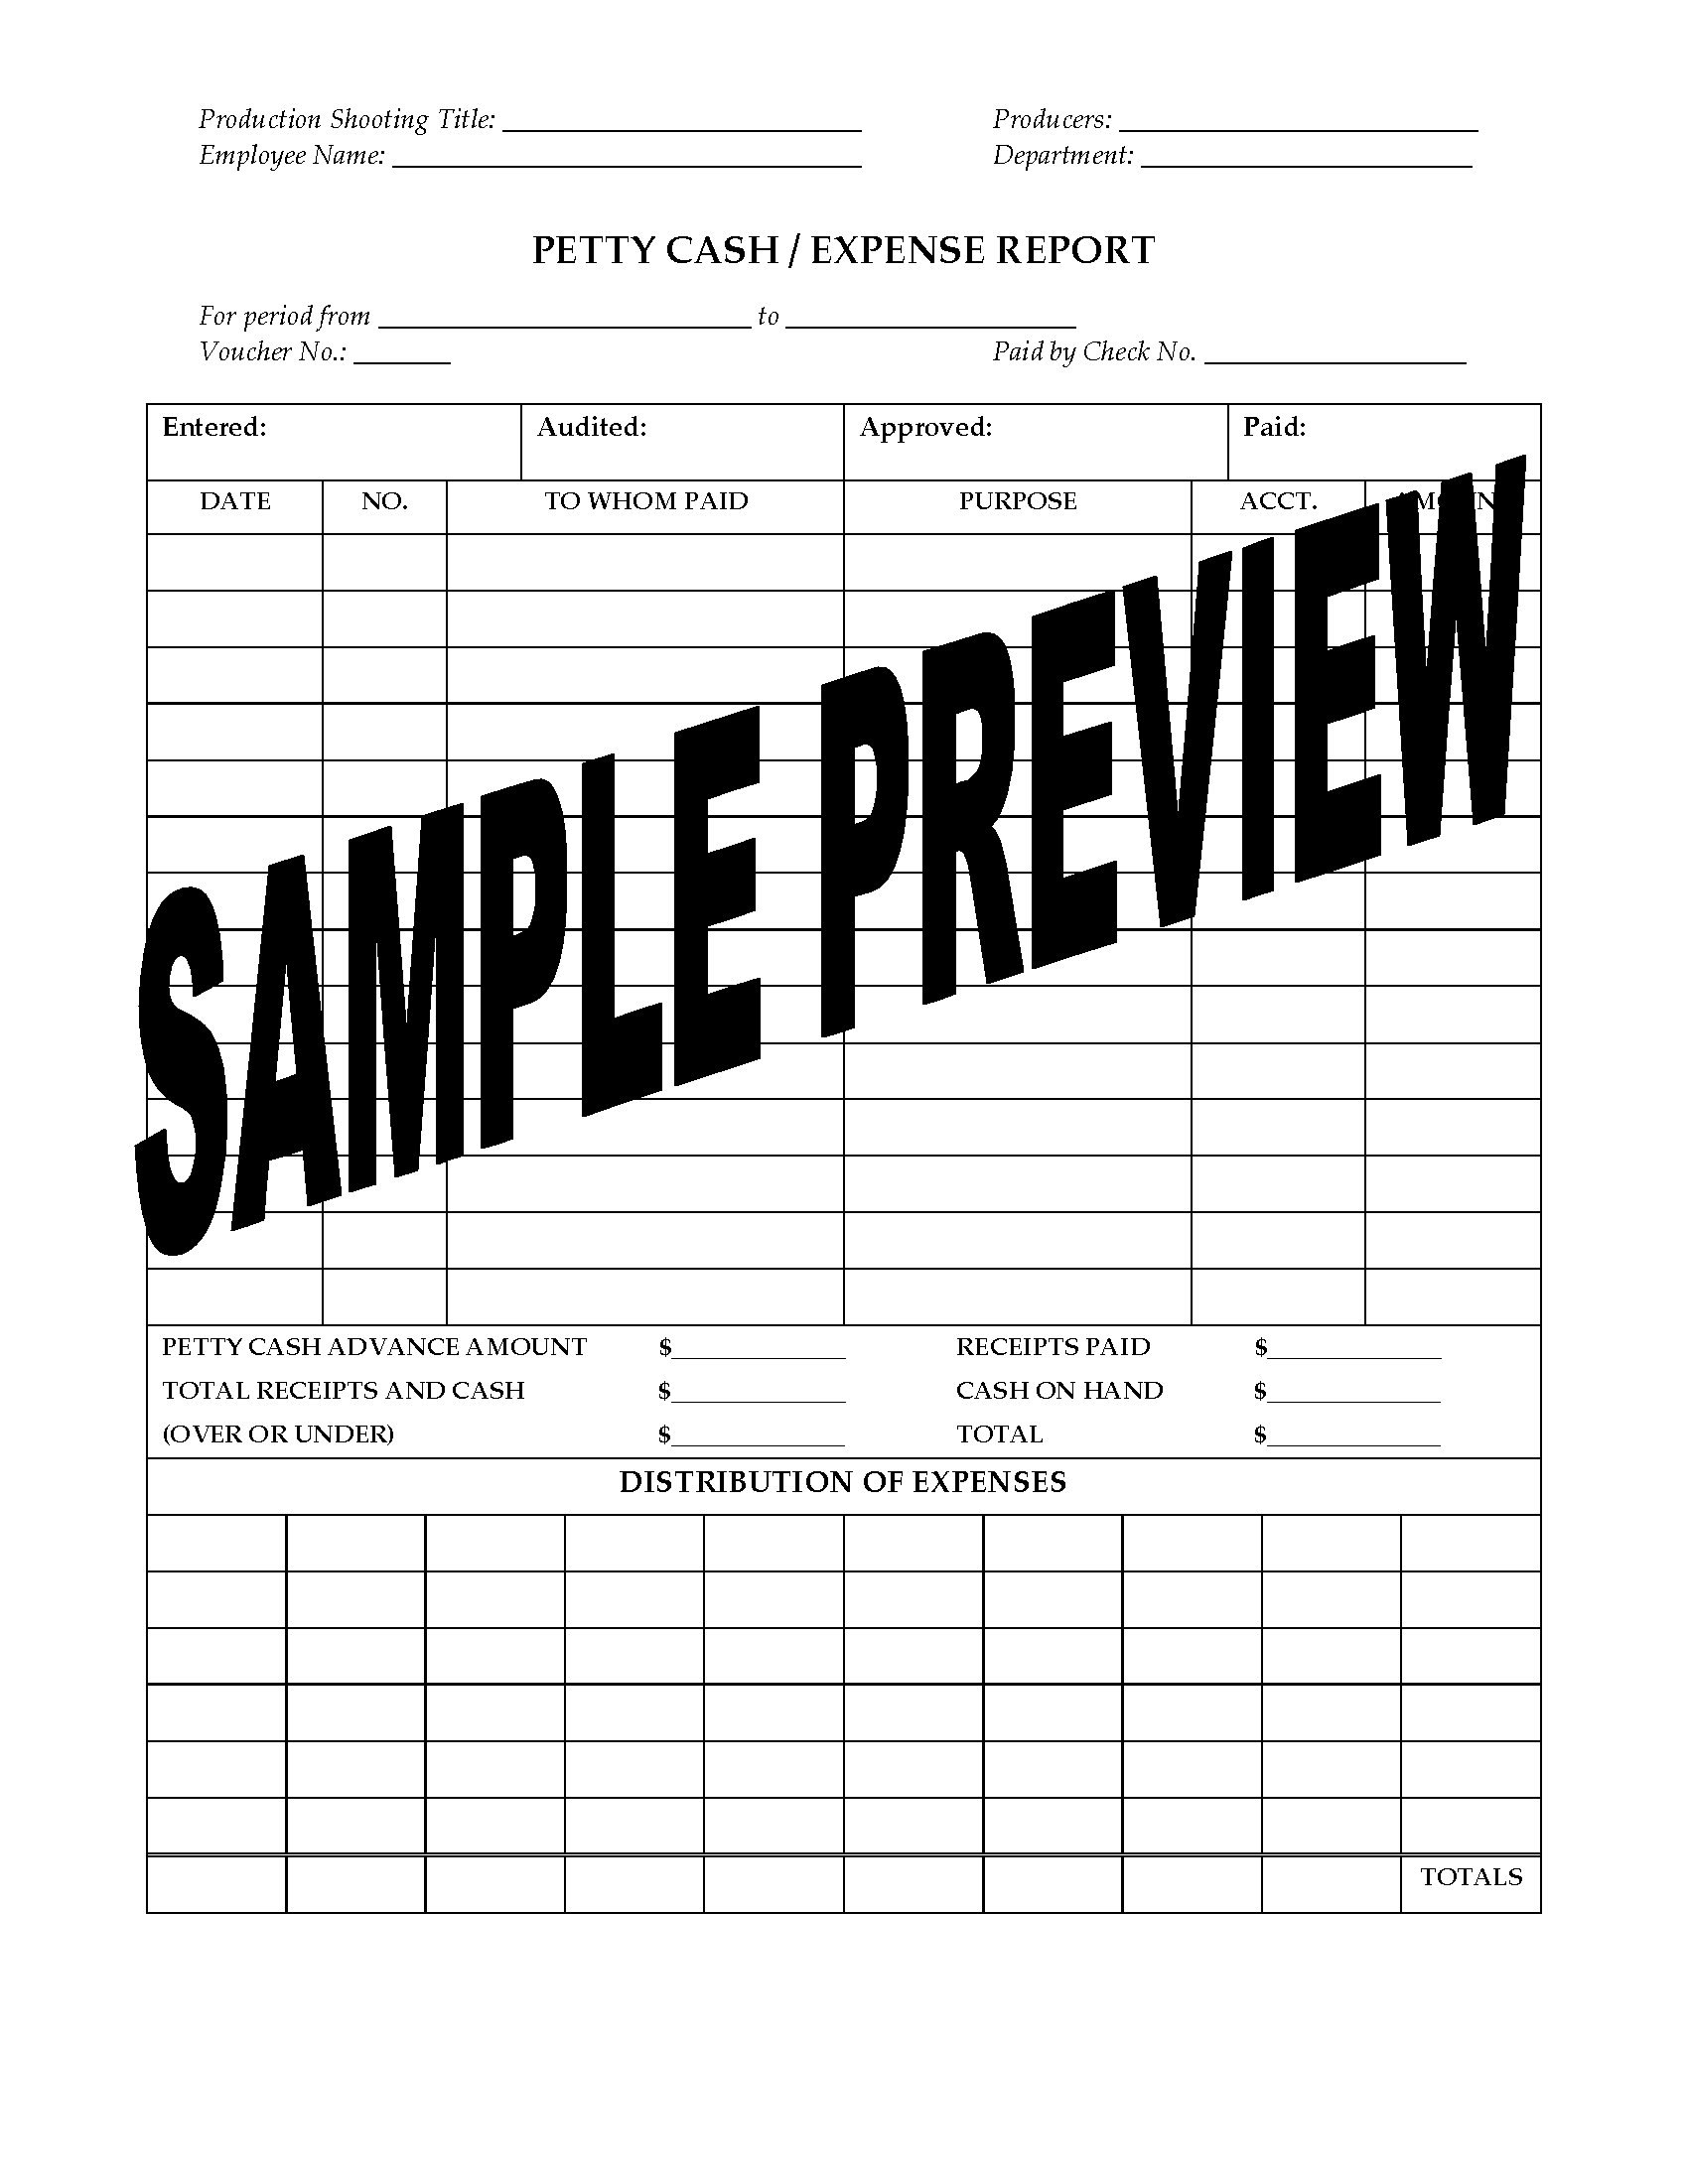 Petty Cash Expense Report For Film Or Tv Production  Legal Forms Inside Petty Cash Expense Report Template